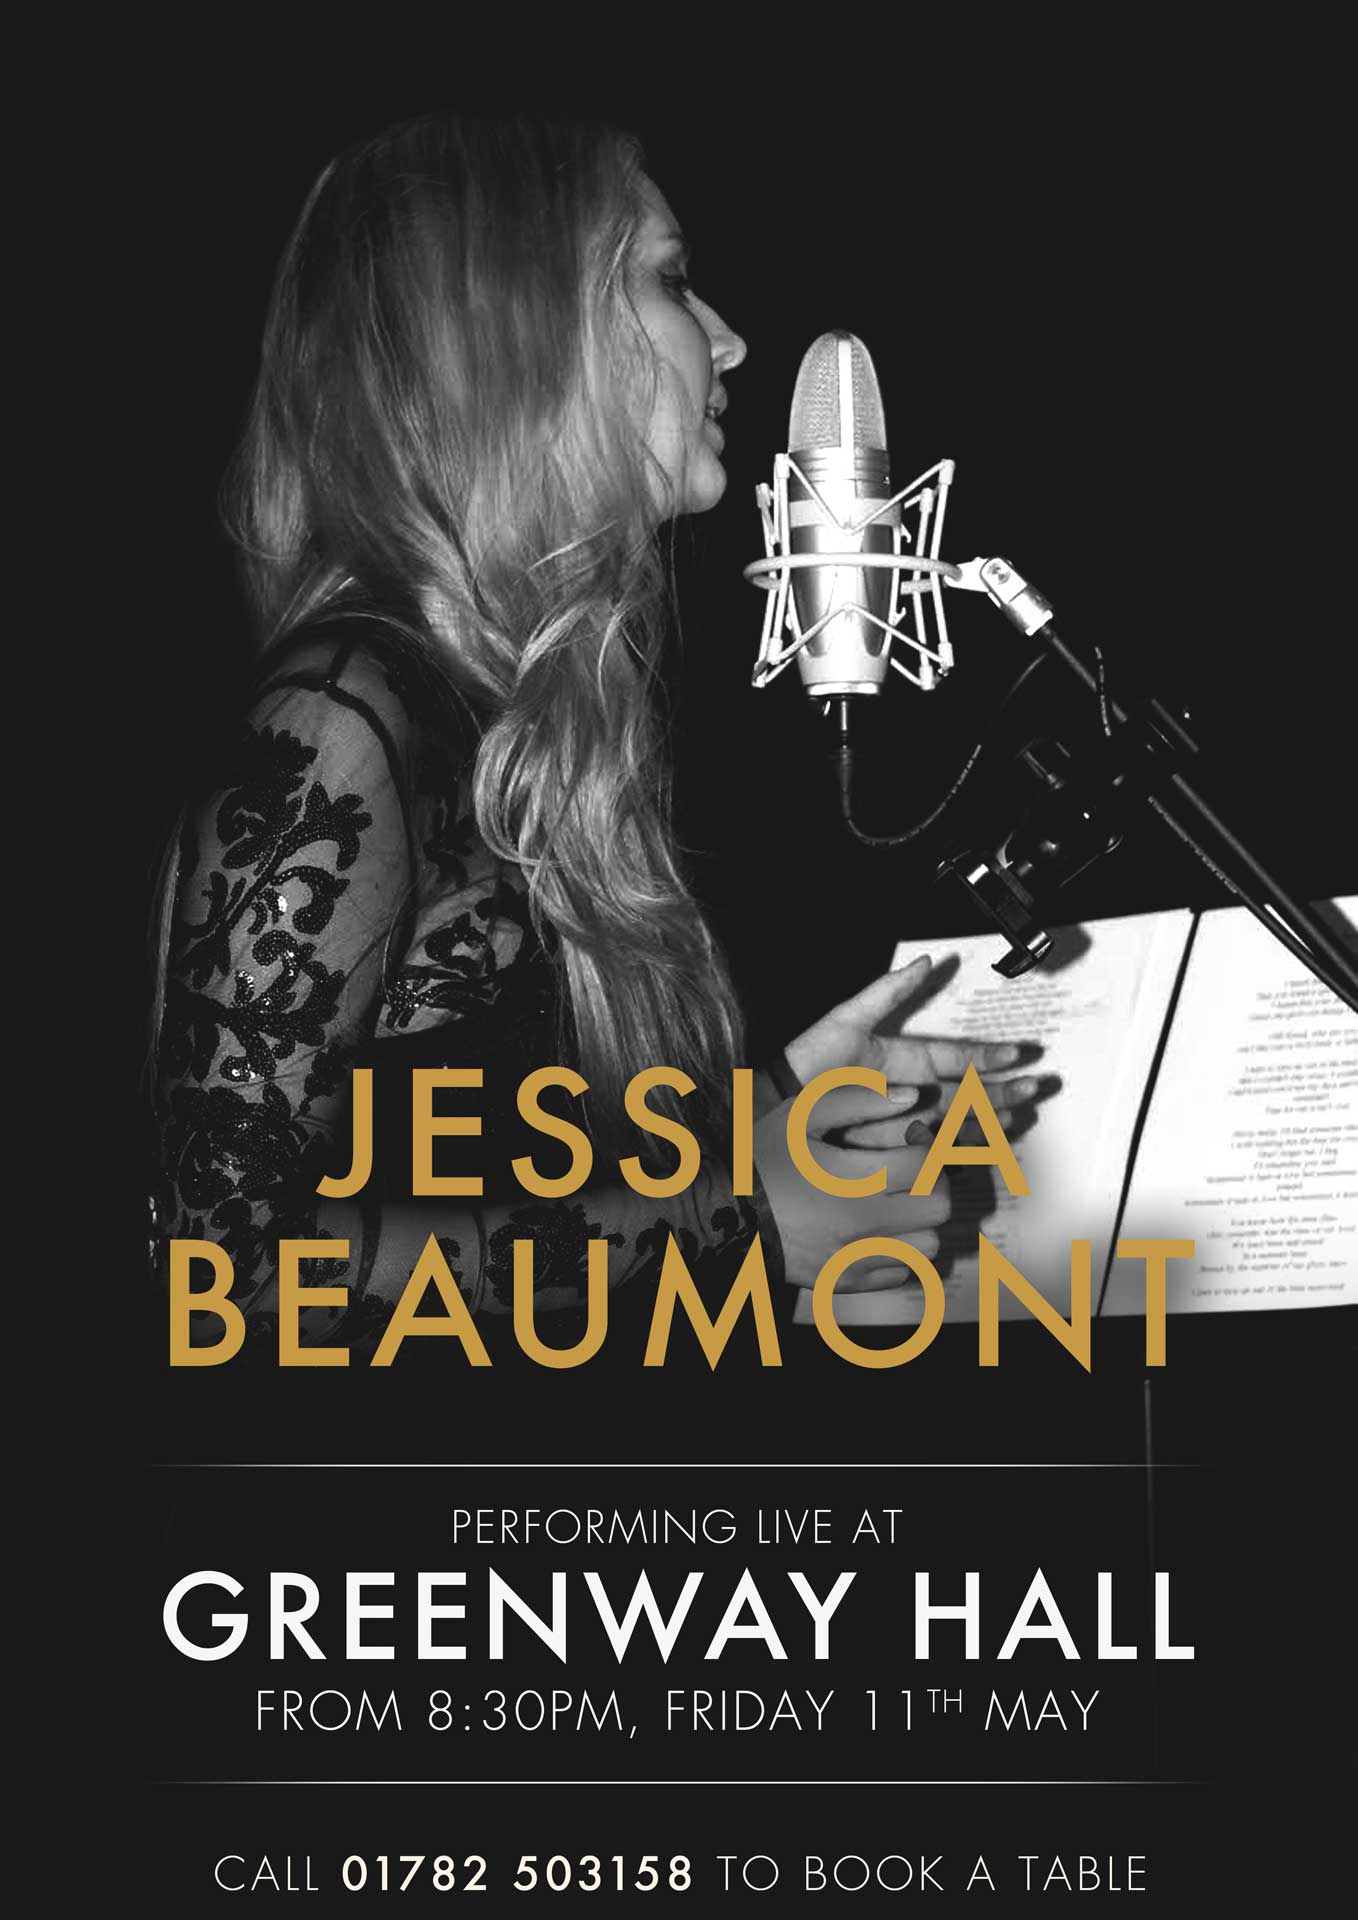 Jessica Beaumont Performing Live at Greenway Hall